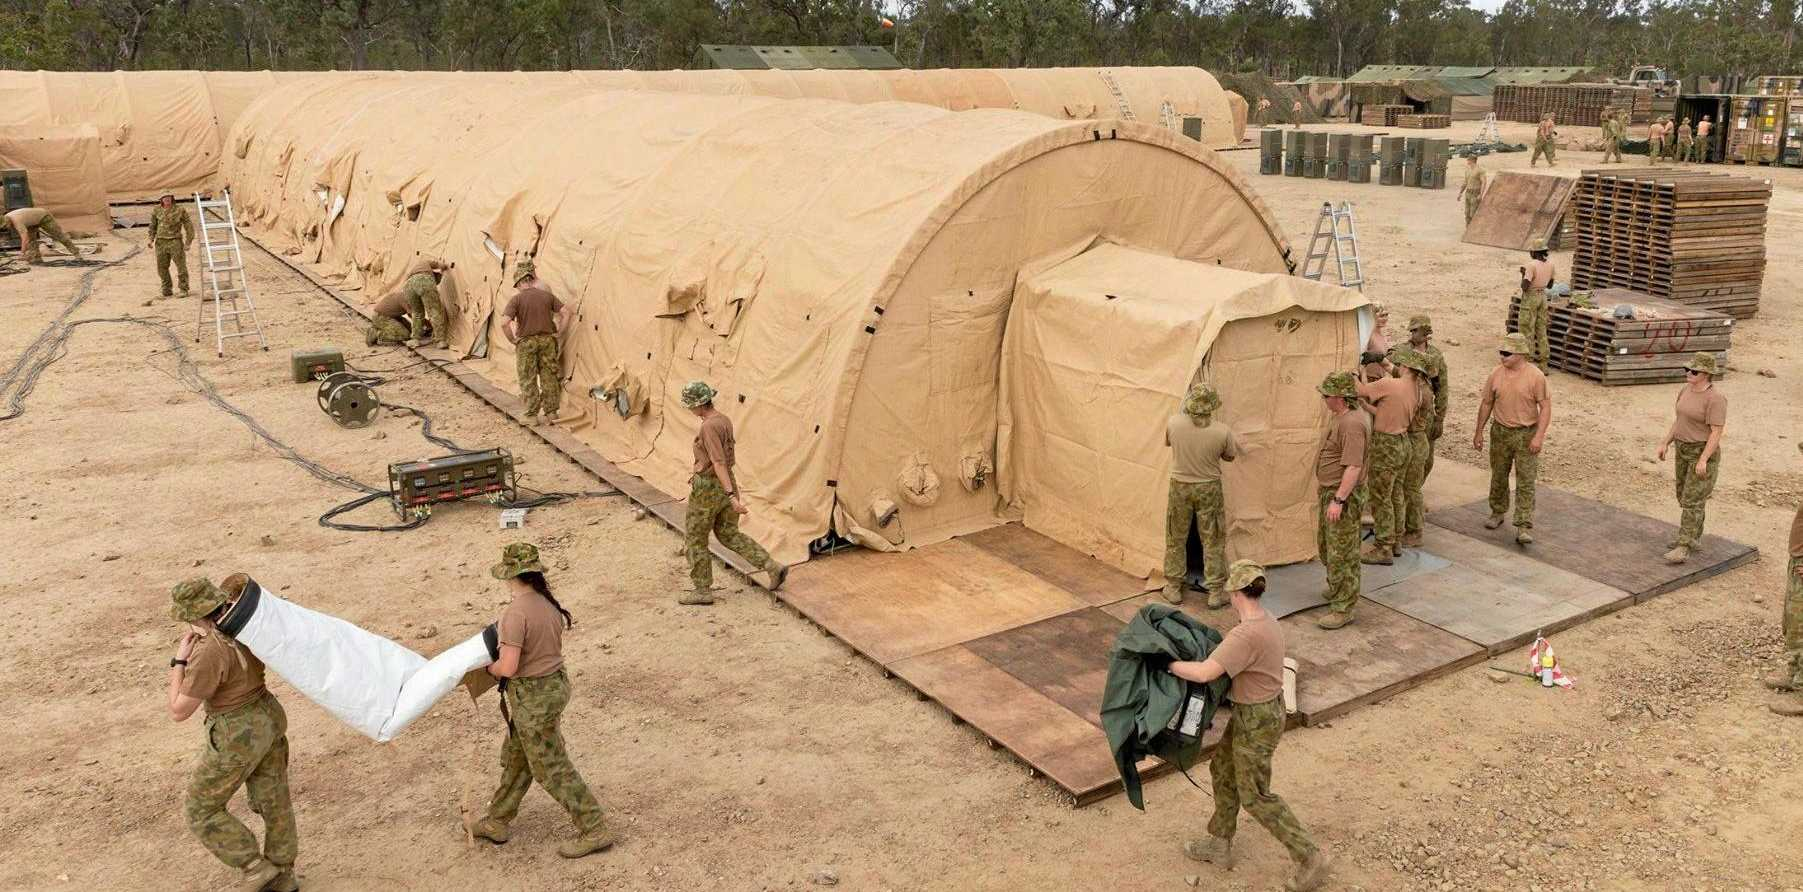 Members of Australian Army's 2nd General Health Battalion have begun construction of a Role 2E (Enhanced) field hospital in the vicinity of Williamson Airfield, Shoalwater Bay as part of Talisman Saber 2017 (TS 17).